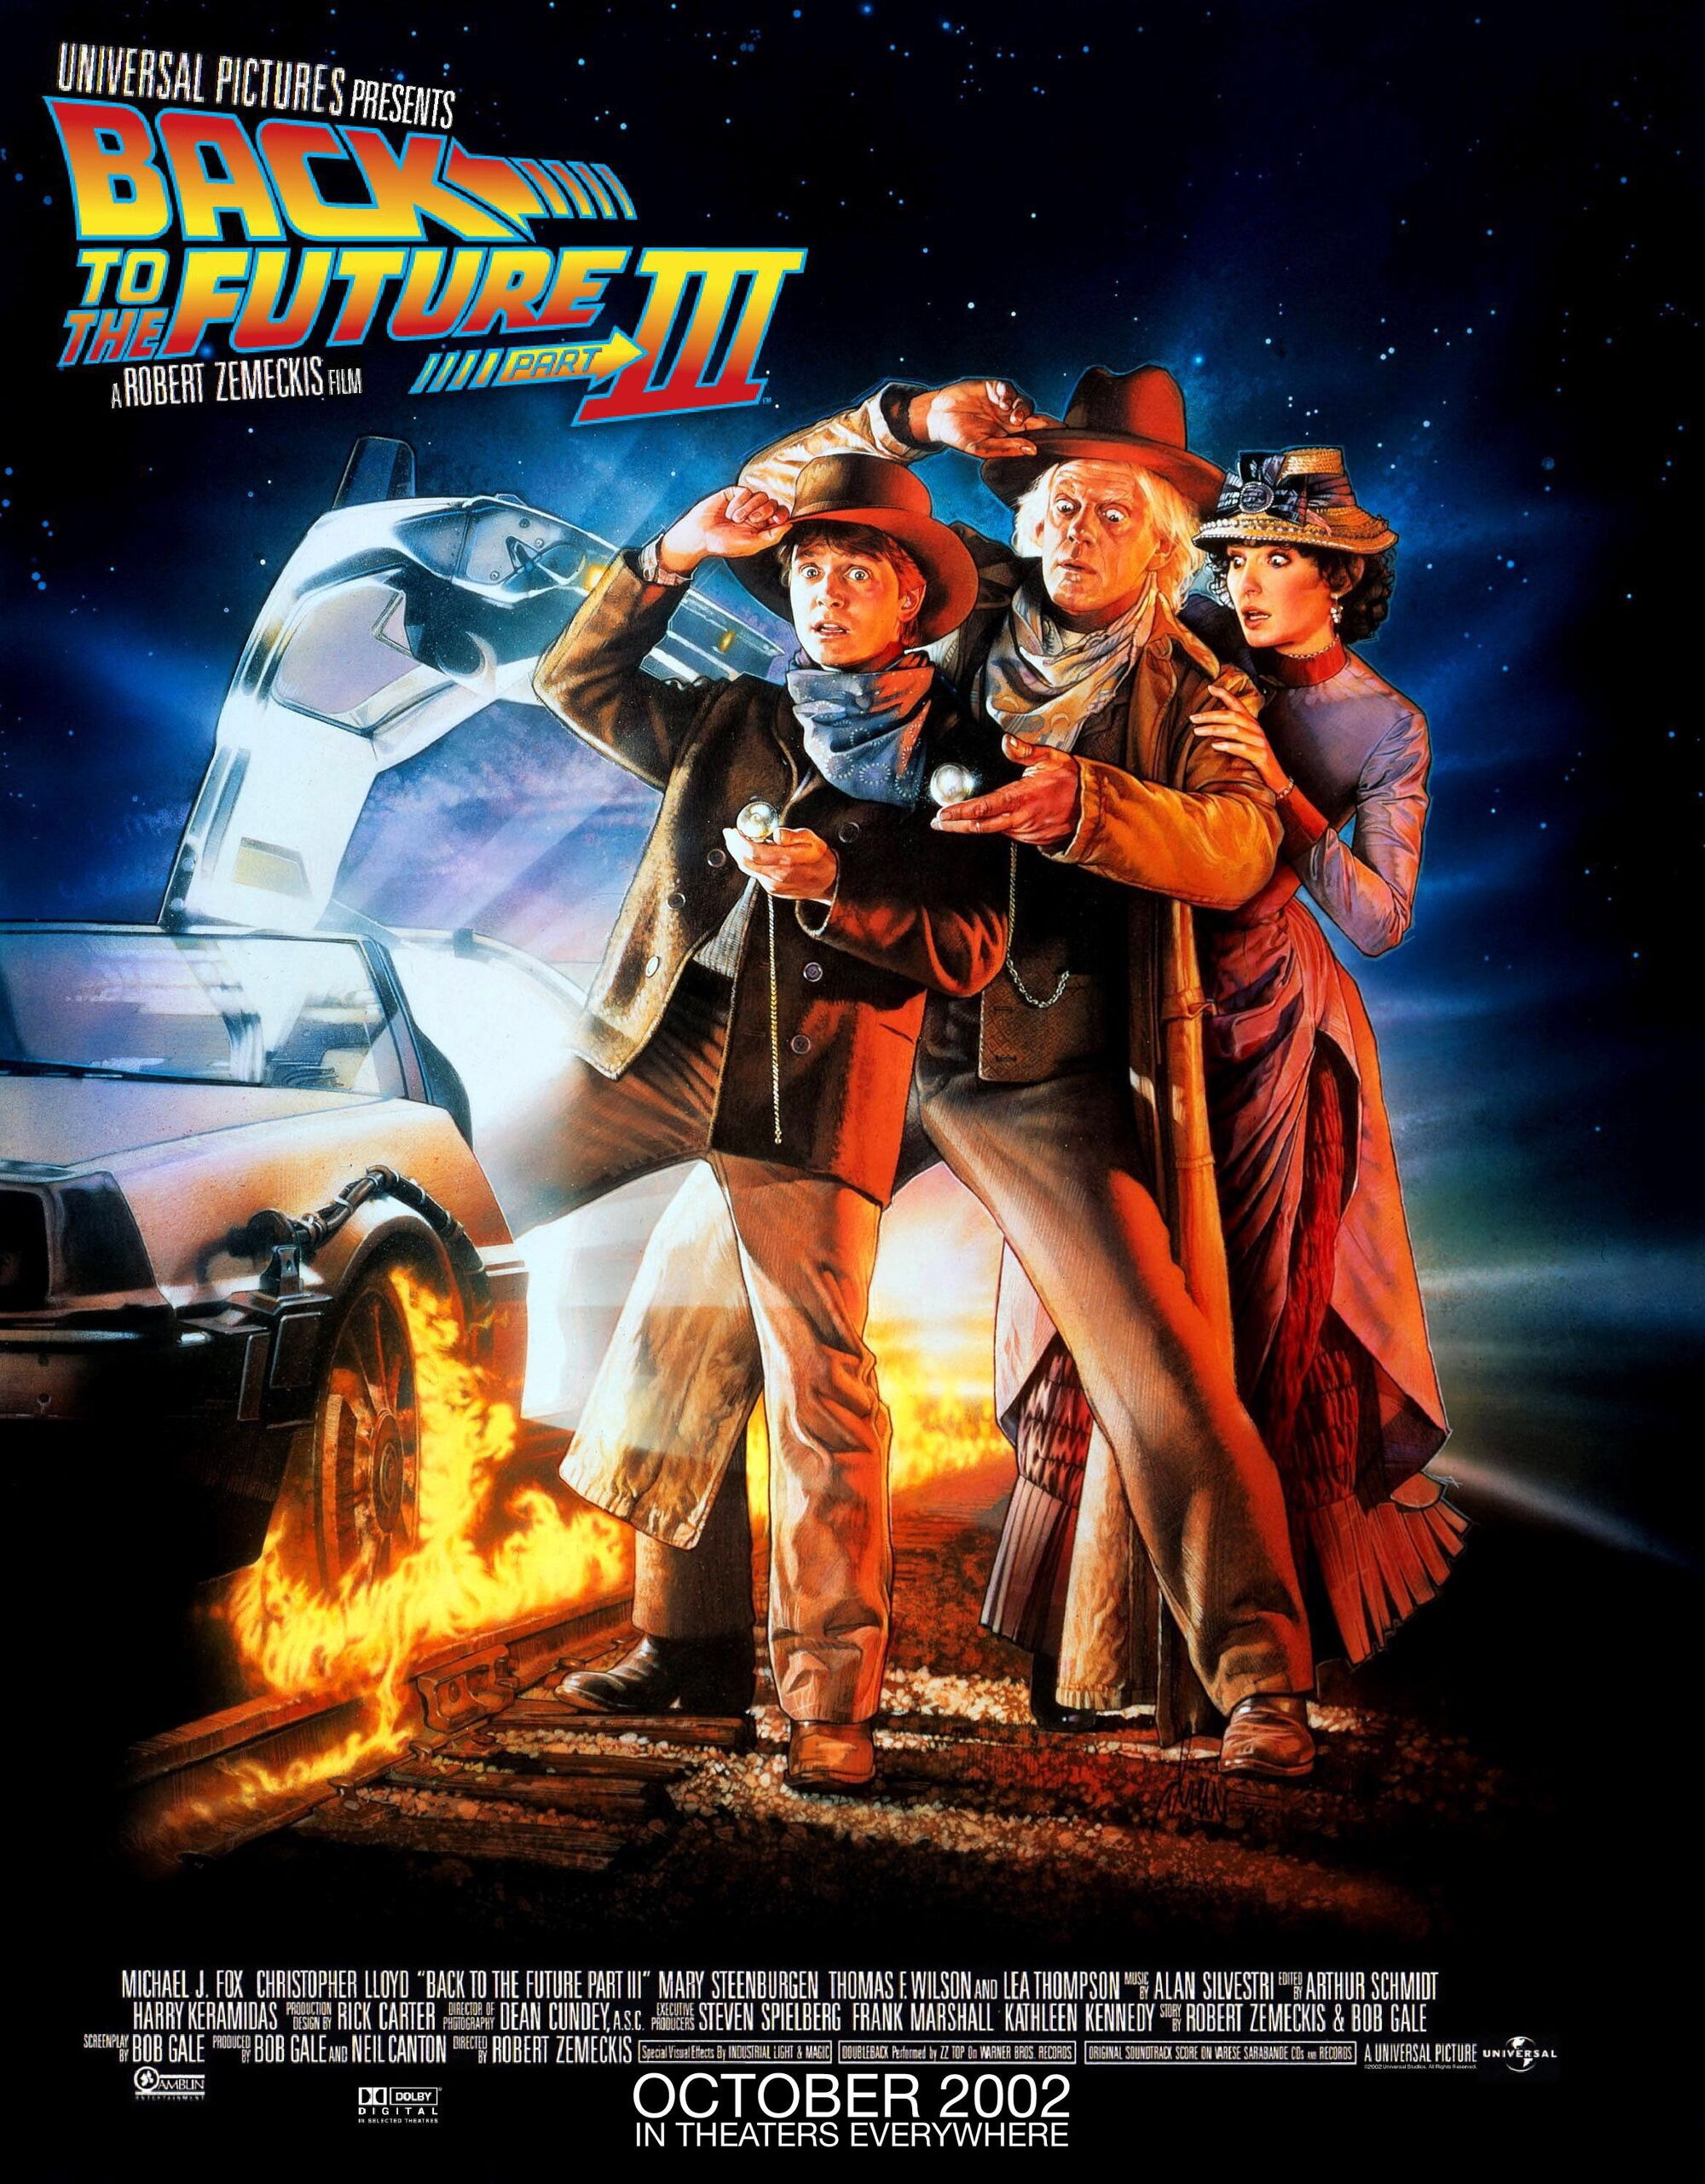 Back to the future poster signed